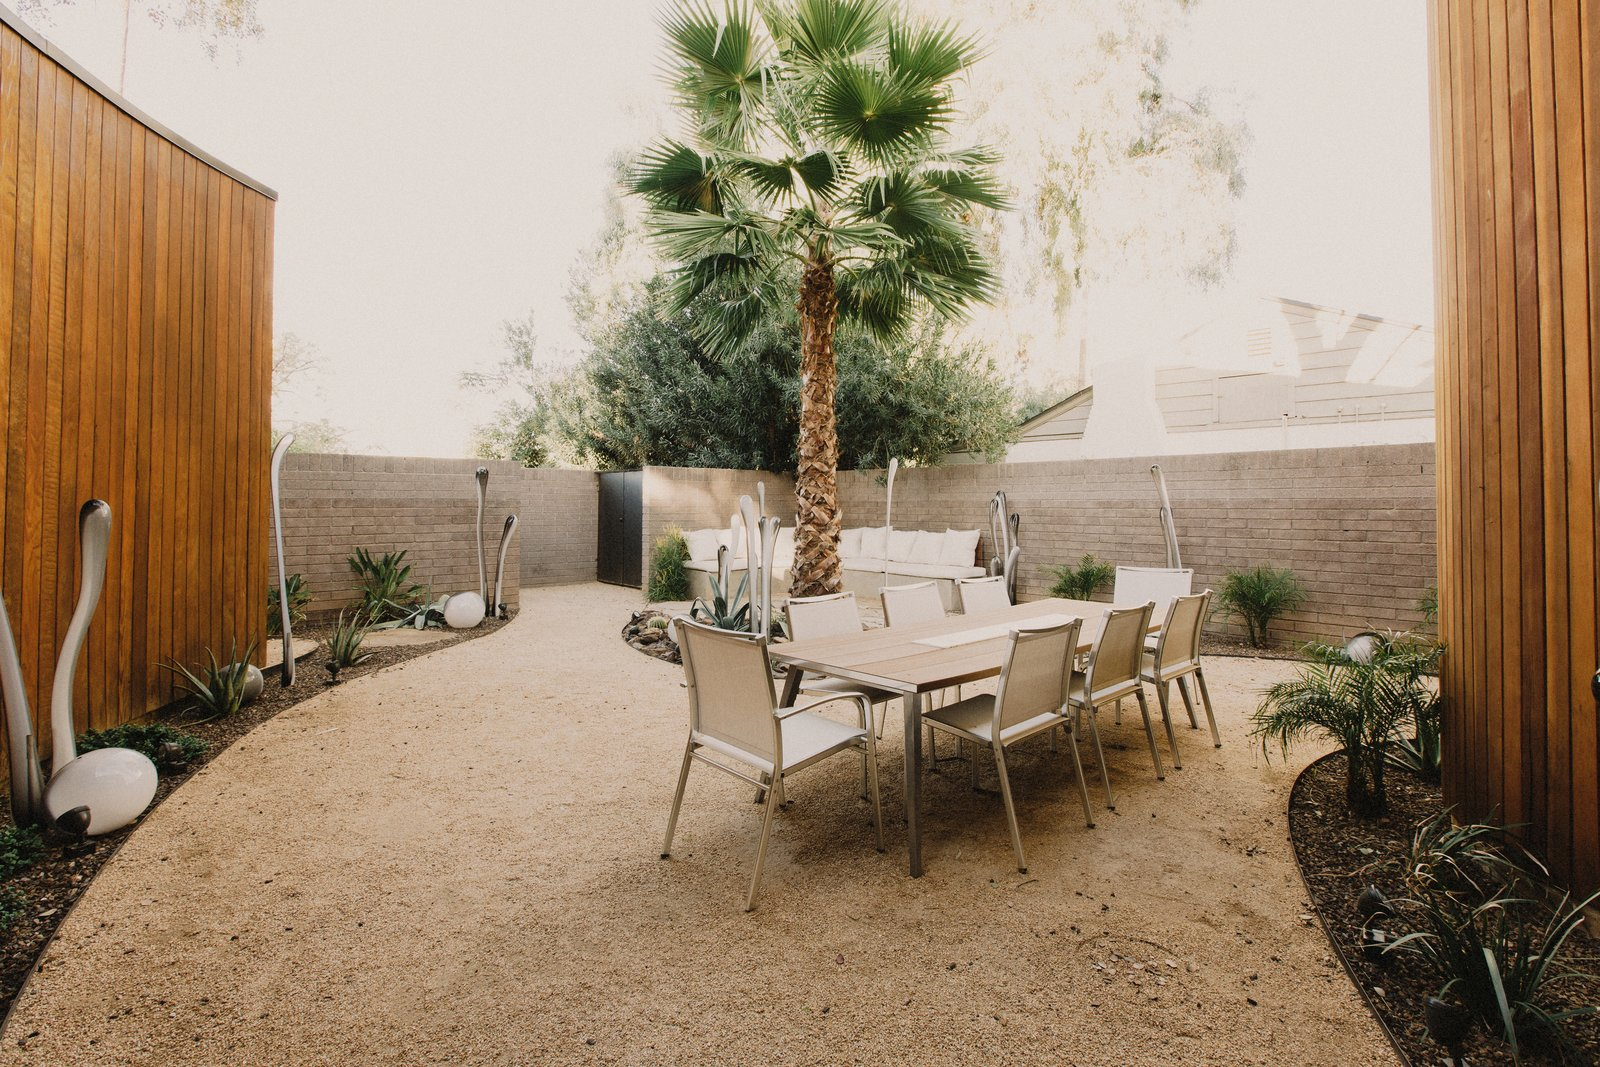 Front courtyard extends living functions outside of the house, allowing the house to live much larger than its footprint Tagged: Outdoor, Desert, Shrubs, Trees, Decomposed Granite Patio, Porch, Deck, and Stone Patio, Porch, Deck. Curves House by The Ranch Mine